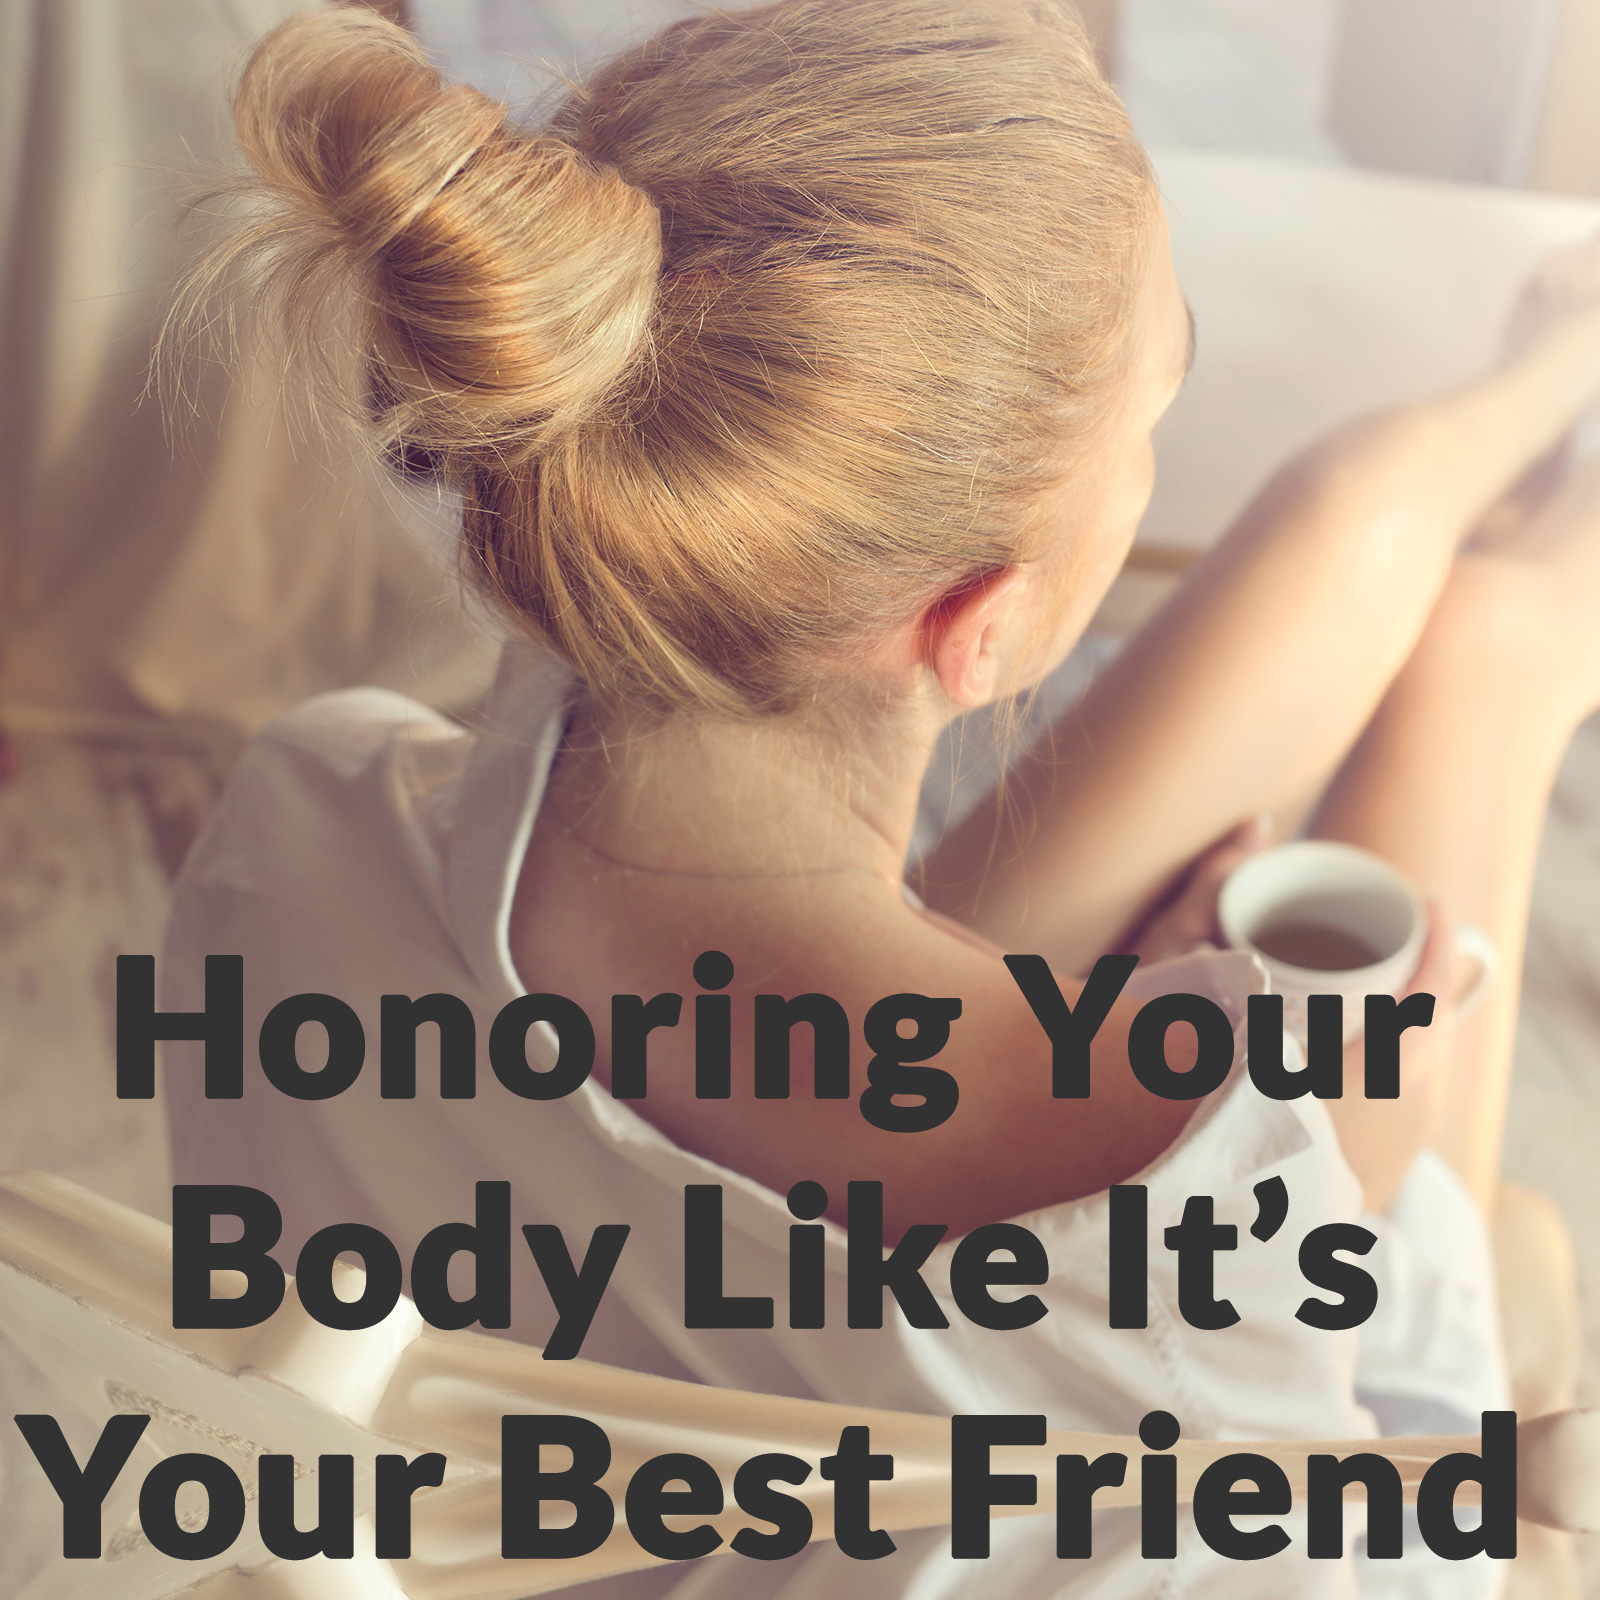 Honoring Your Body Like It's Your Best Friend